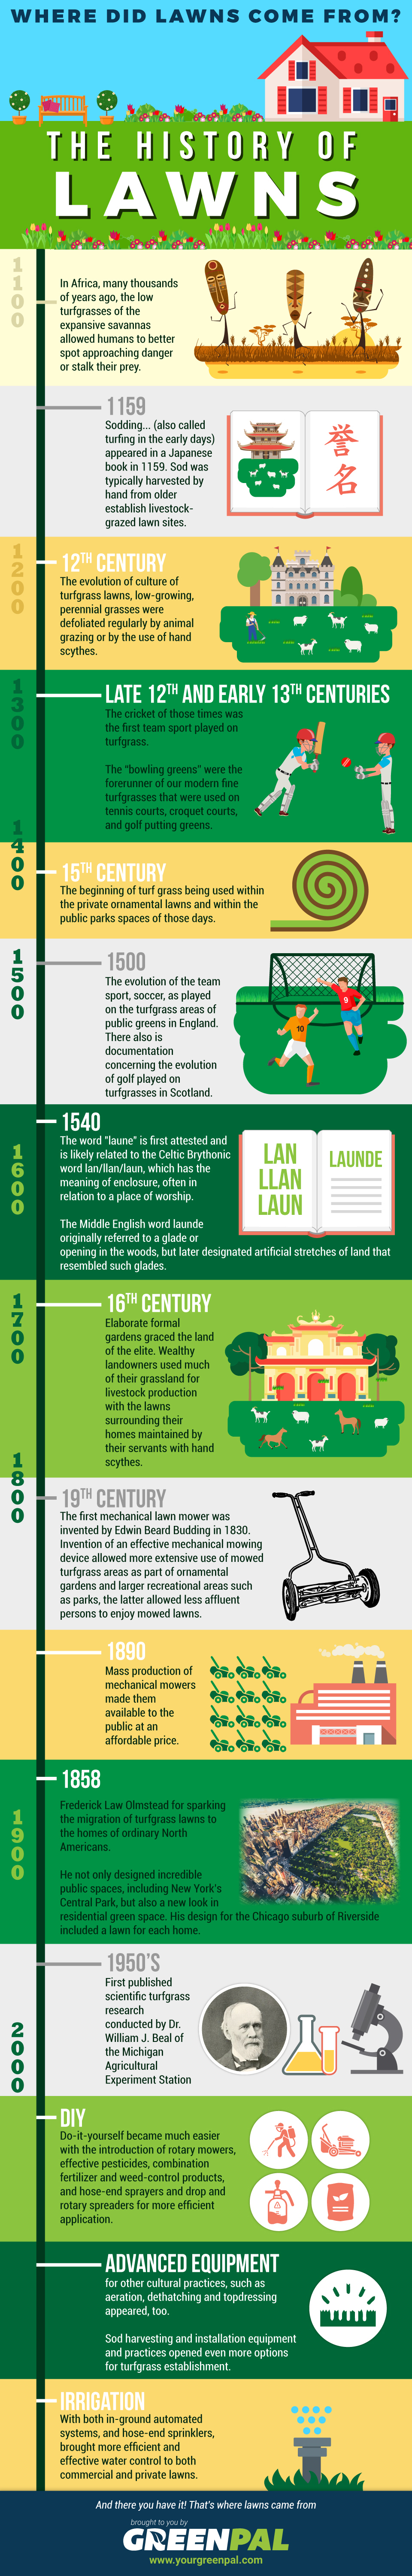 The History Of Lawns: Where Did Lawns Come From?